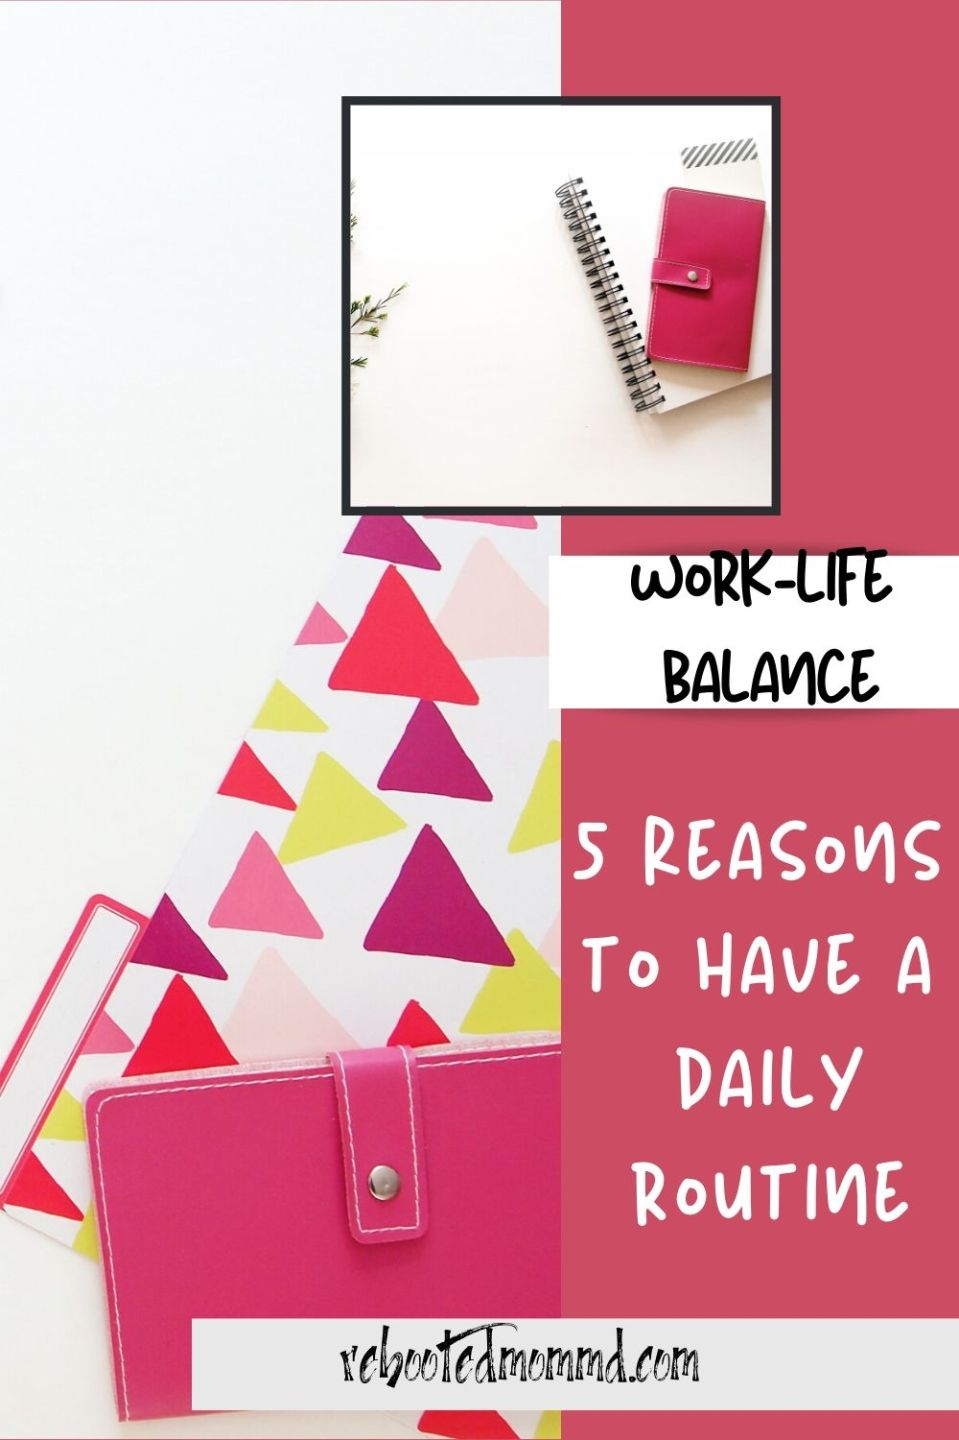 5 Reasons to Build a Daily Routine